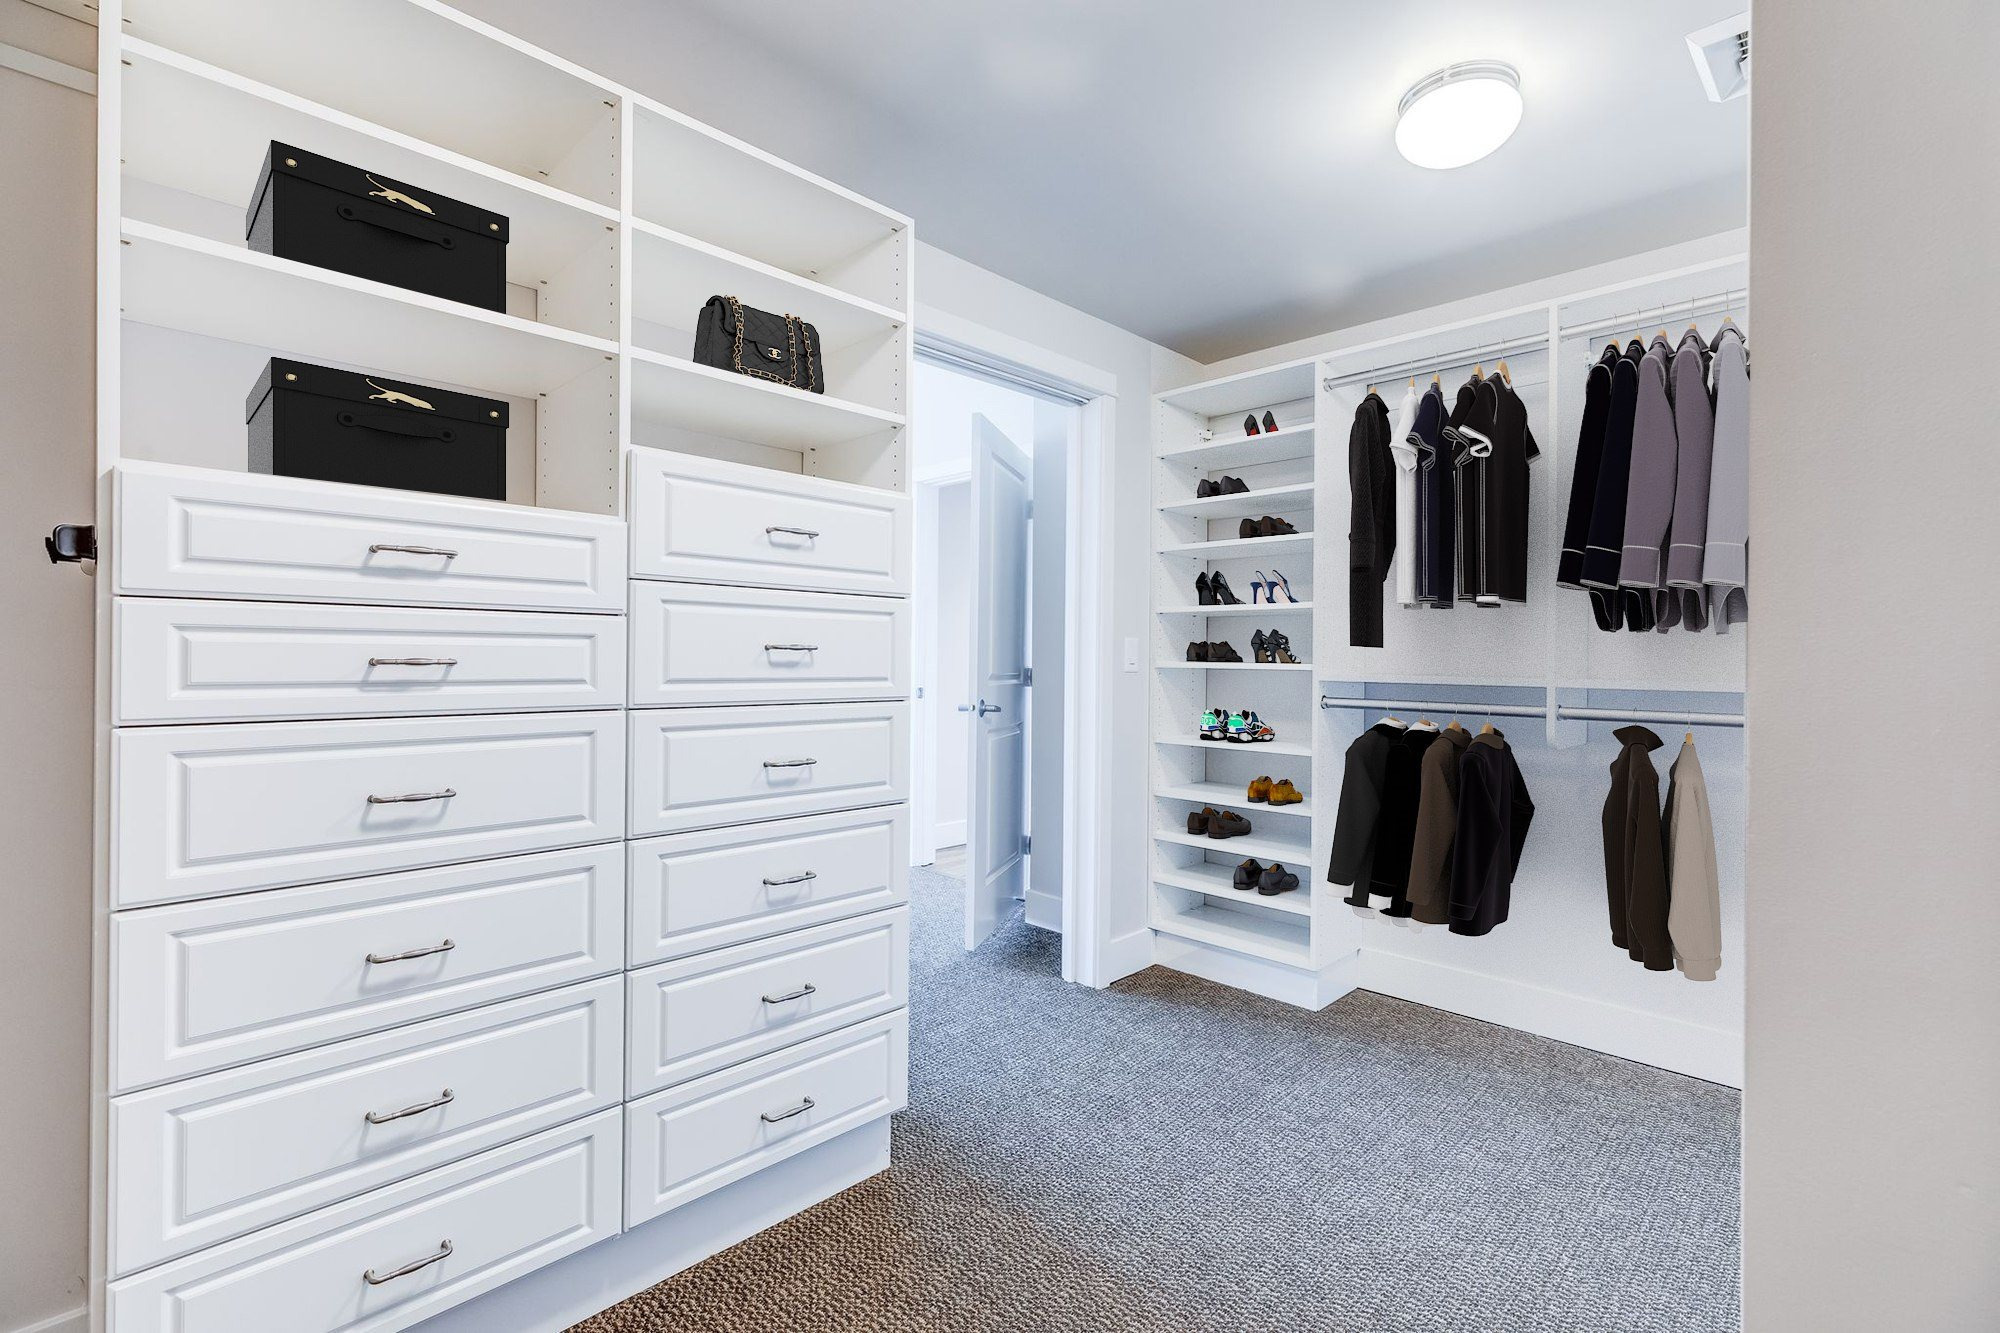 The Mercer Penthouse Model Walk-In Closet